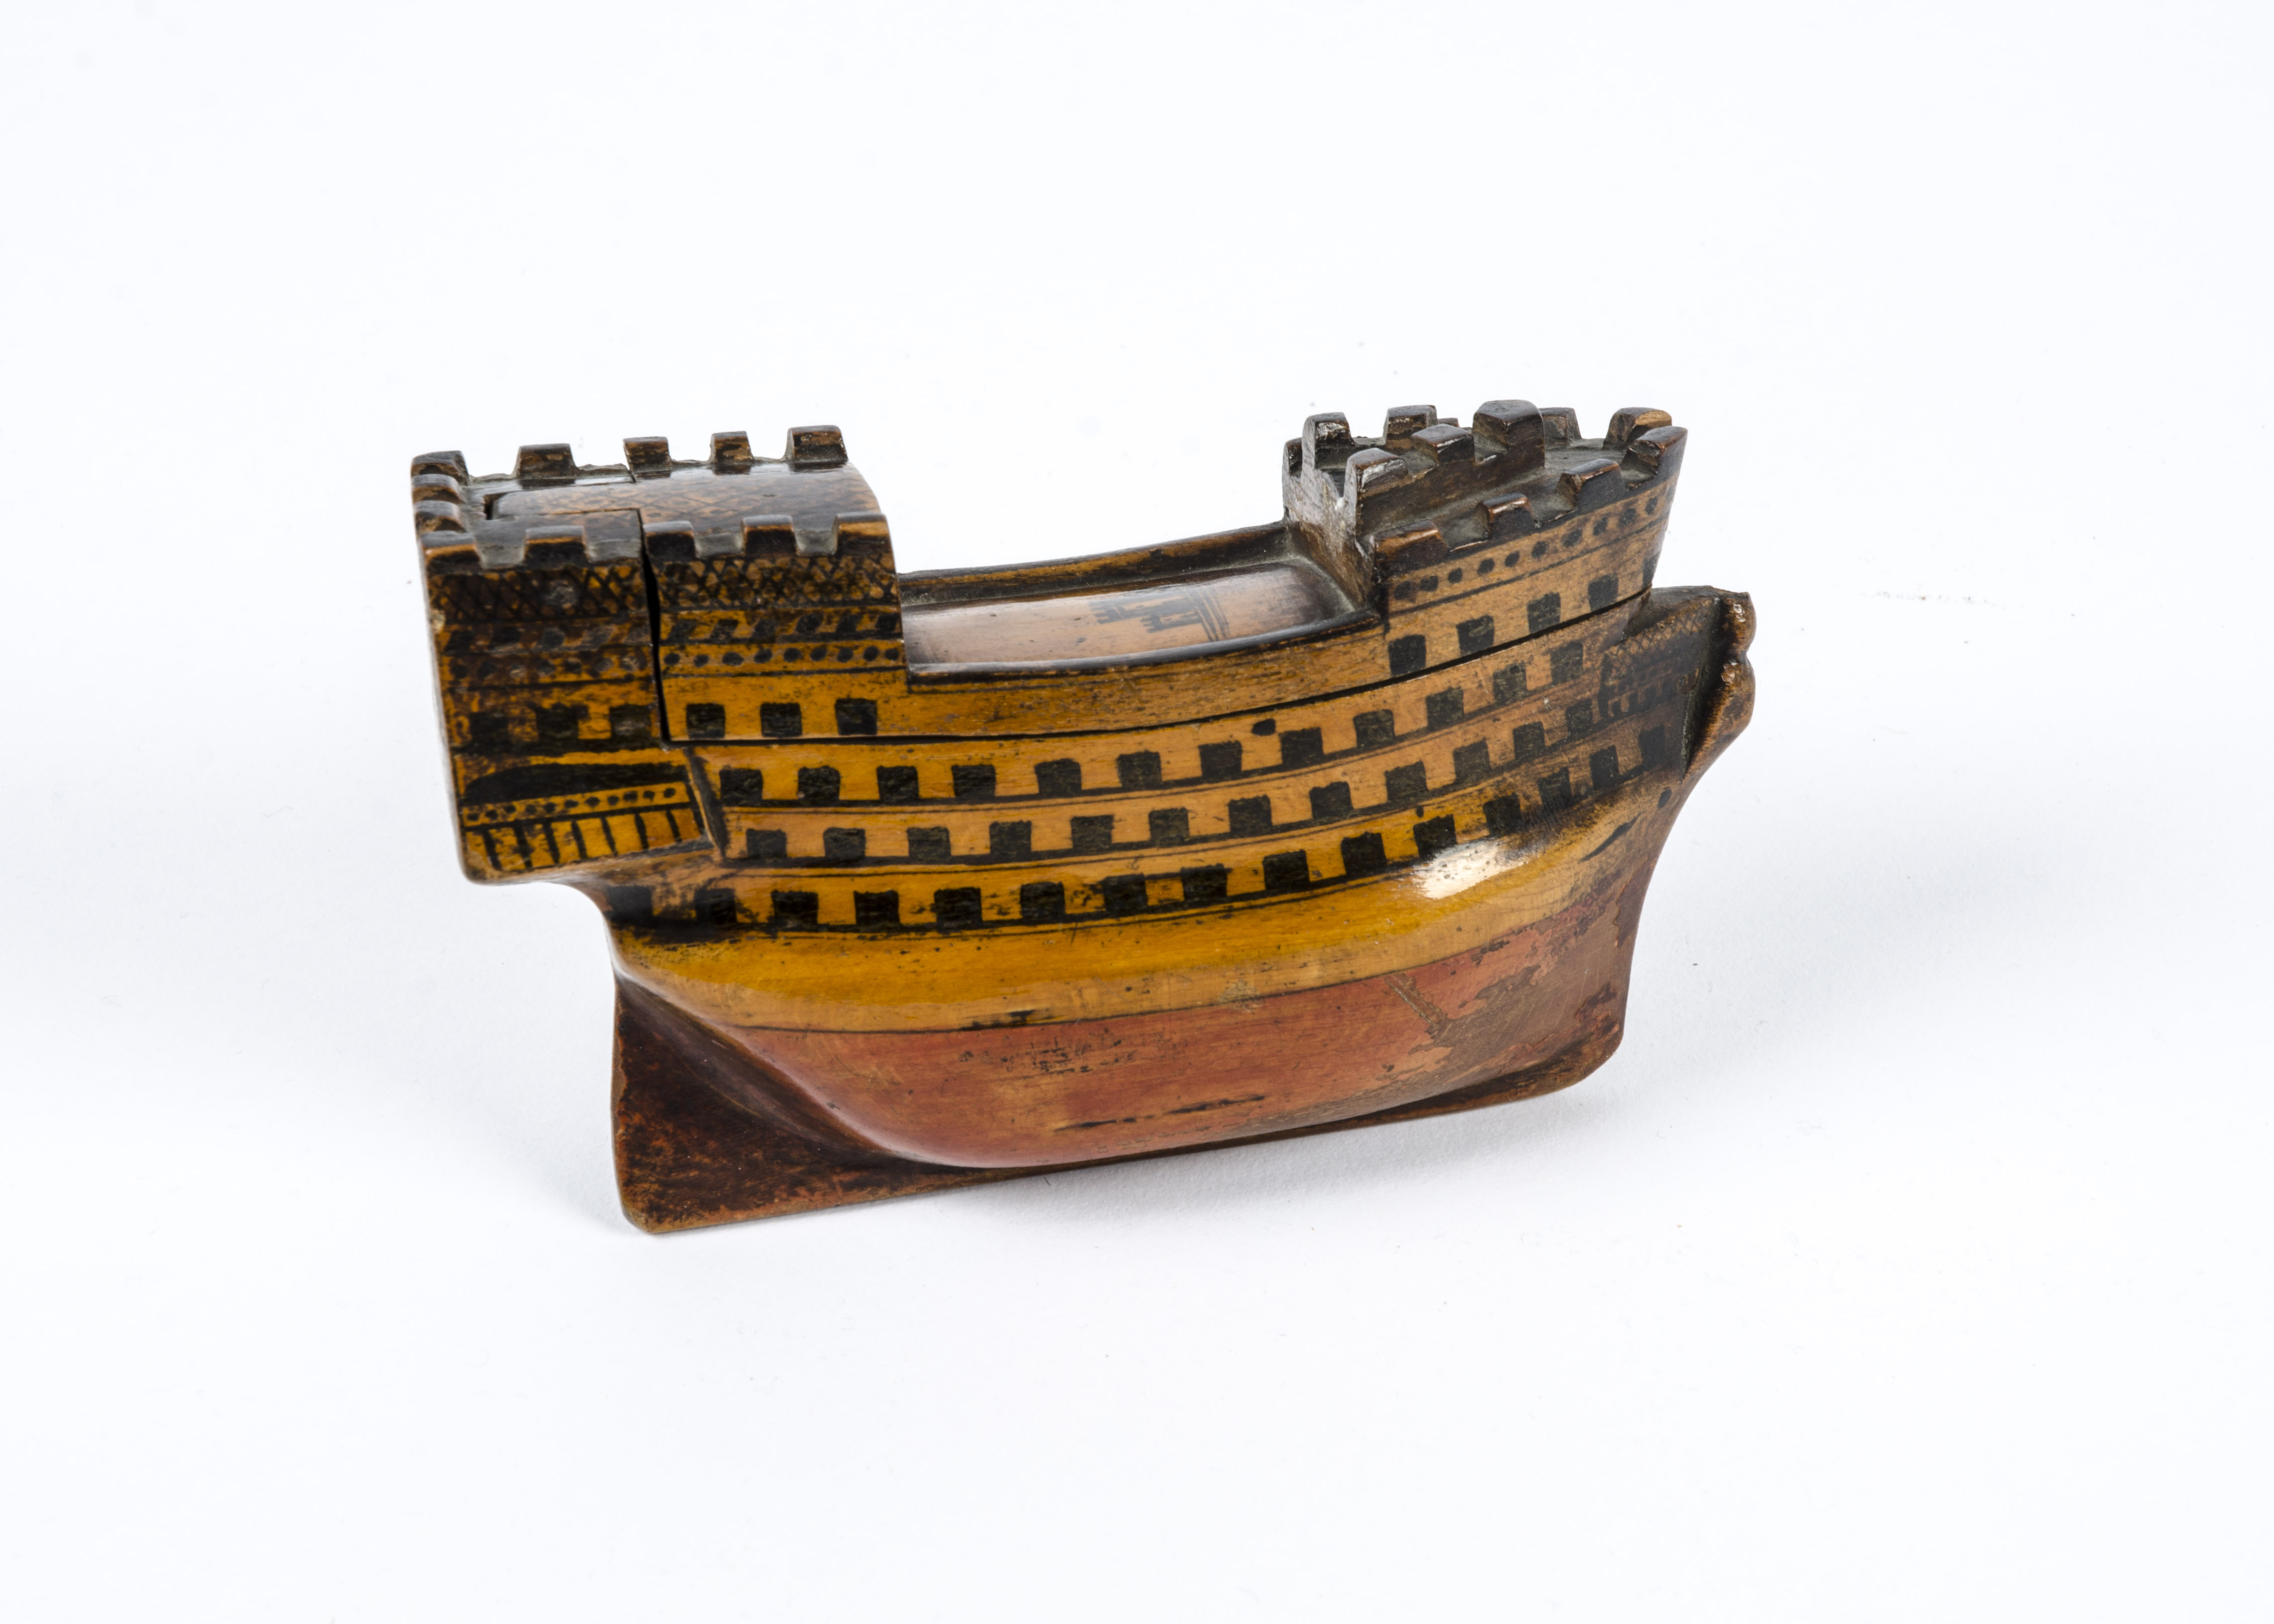 Lot 84 - An interesting 18th Century folk art treen carving of a ship, with a historic note tucked inside ""